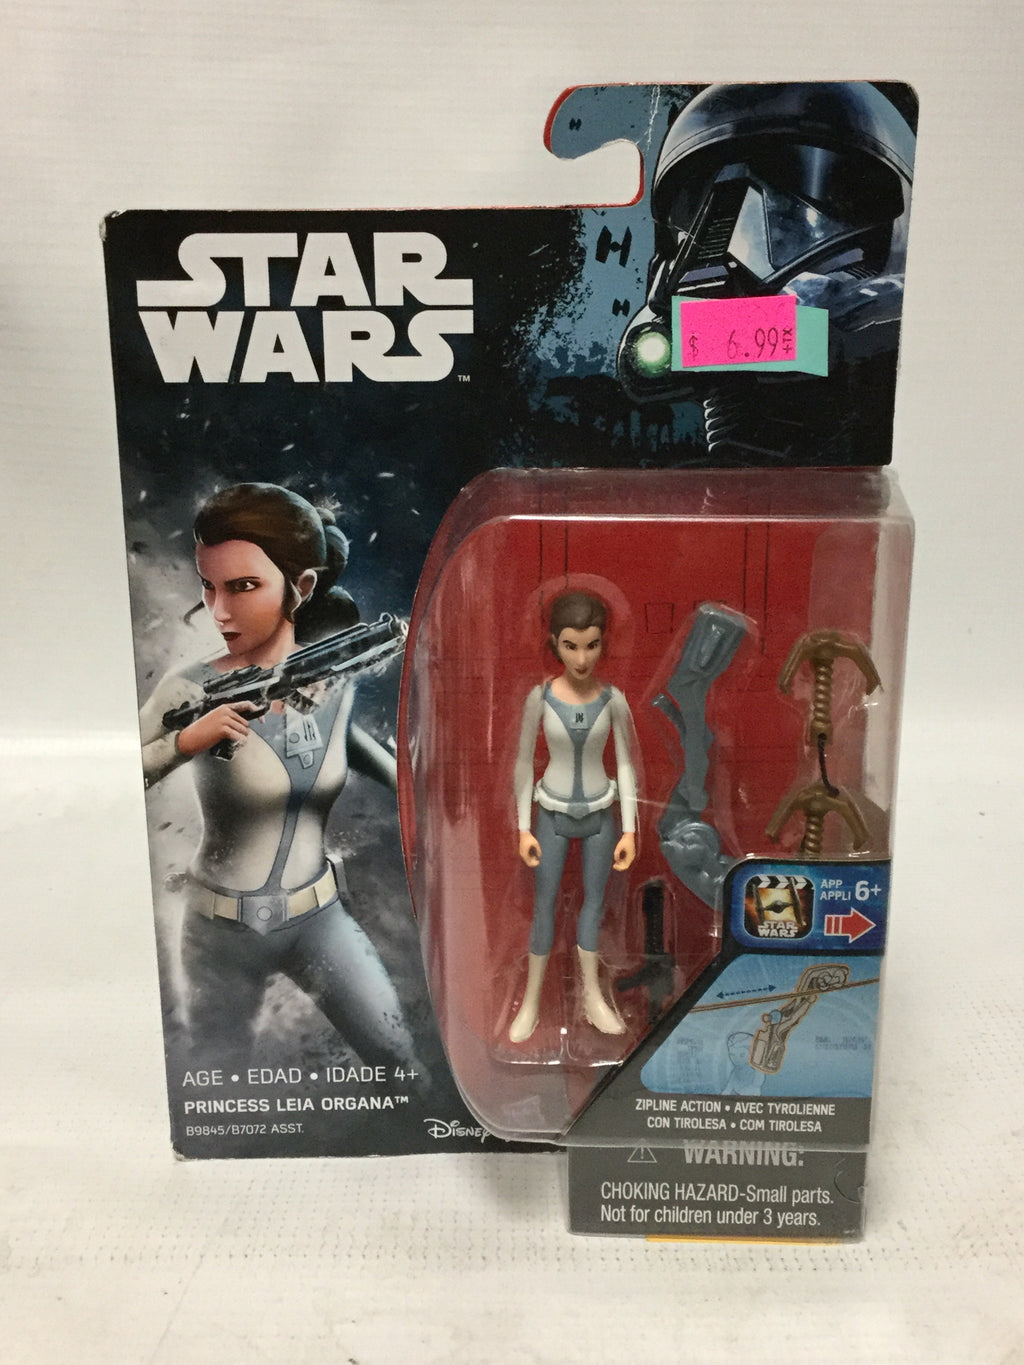 Hasbro Star Wars Princess Leia Organa